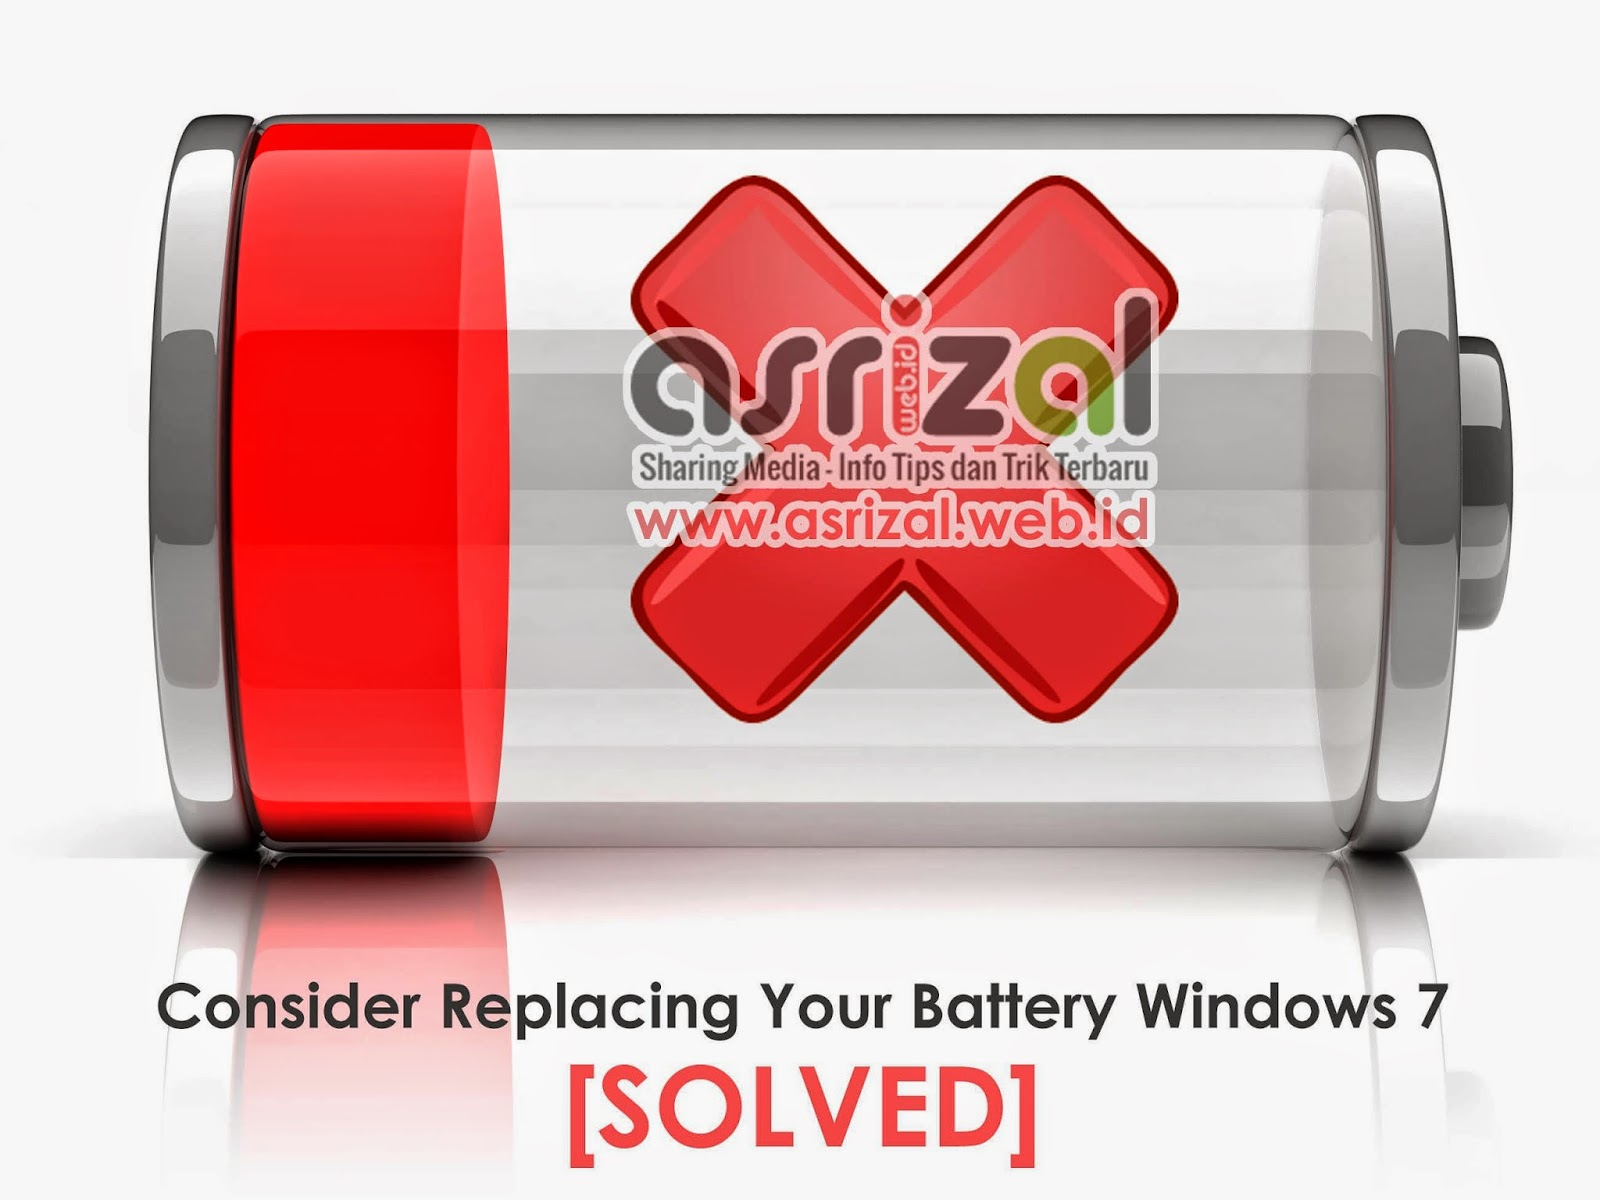 Cara Mengatasi Consider Replacing Your Battery Pada Windows 7